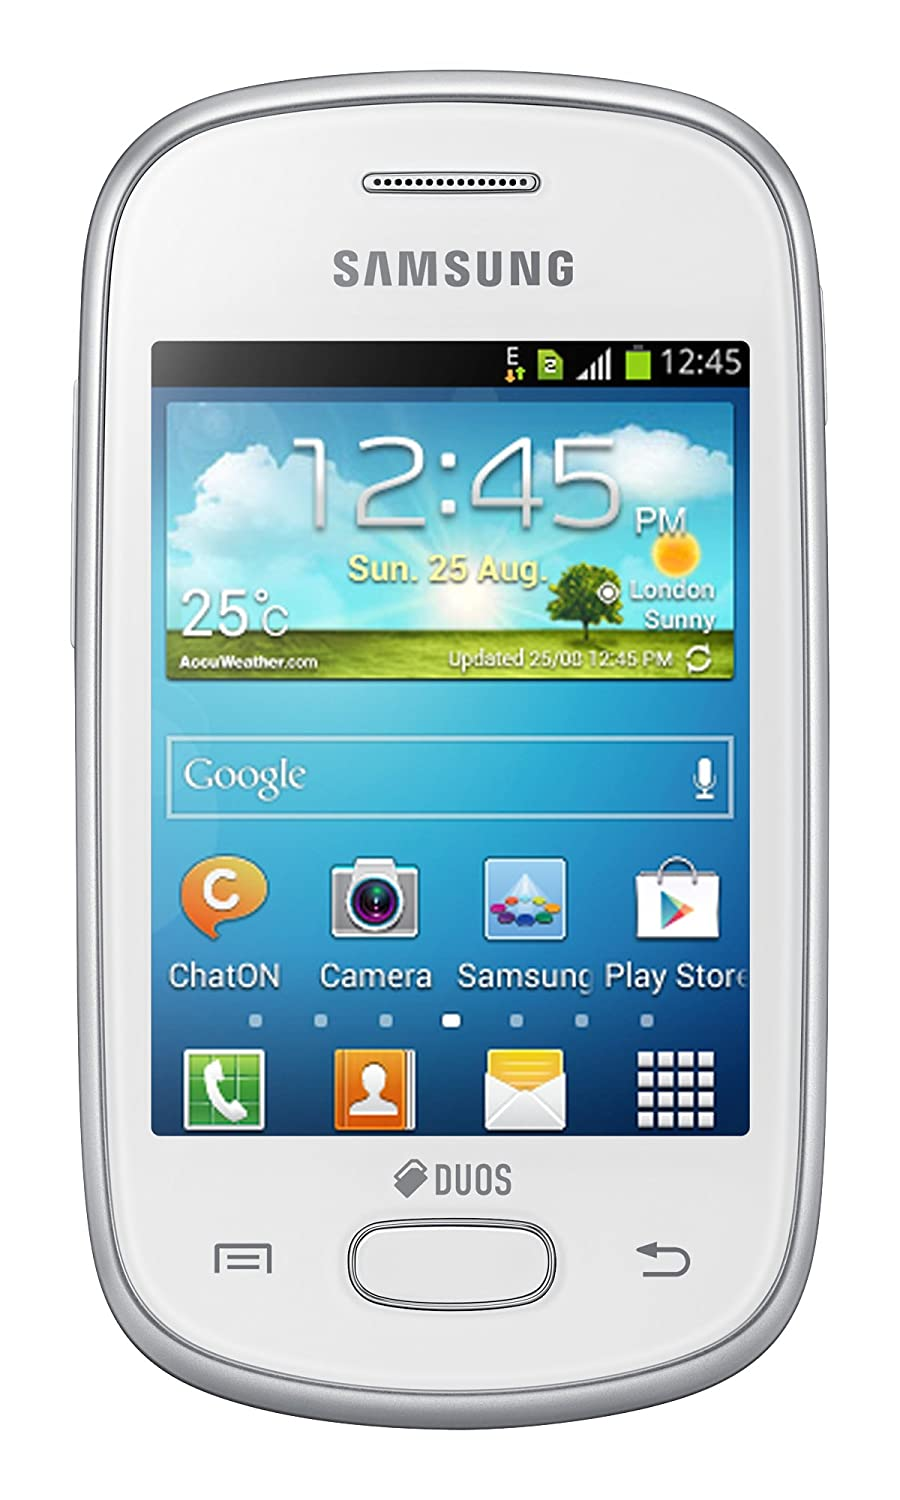 Samsung Galaxy Star Duos S5282, Dual SIM, Factory Unlocked Android SmartPhone - International Version, No Warranty (White)